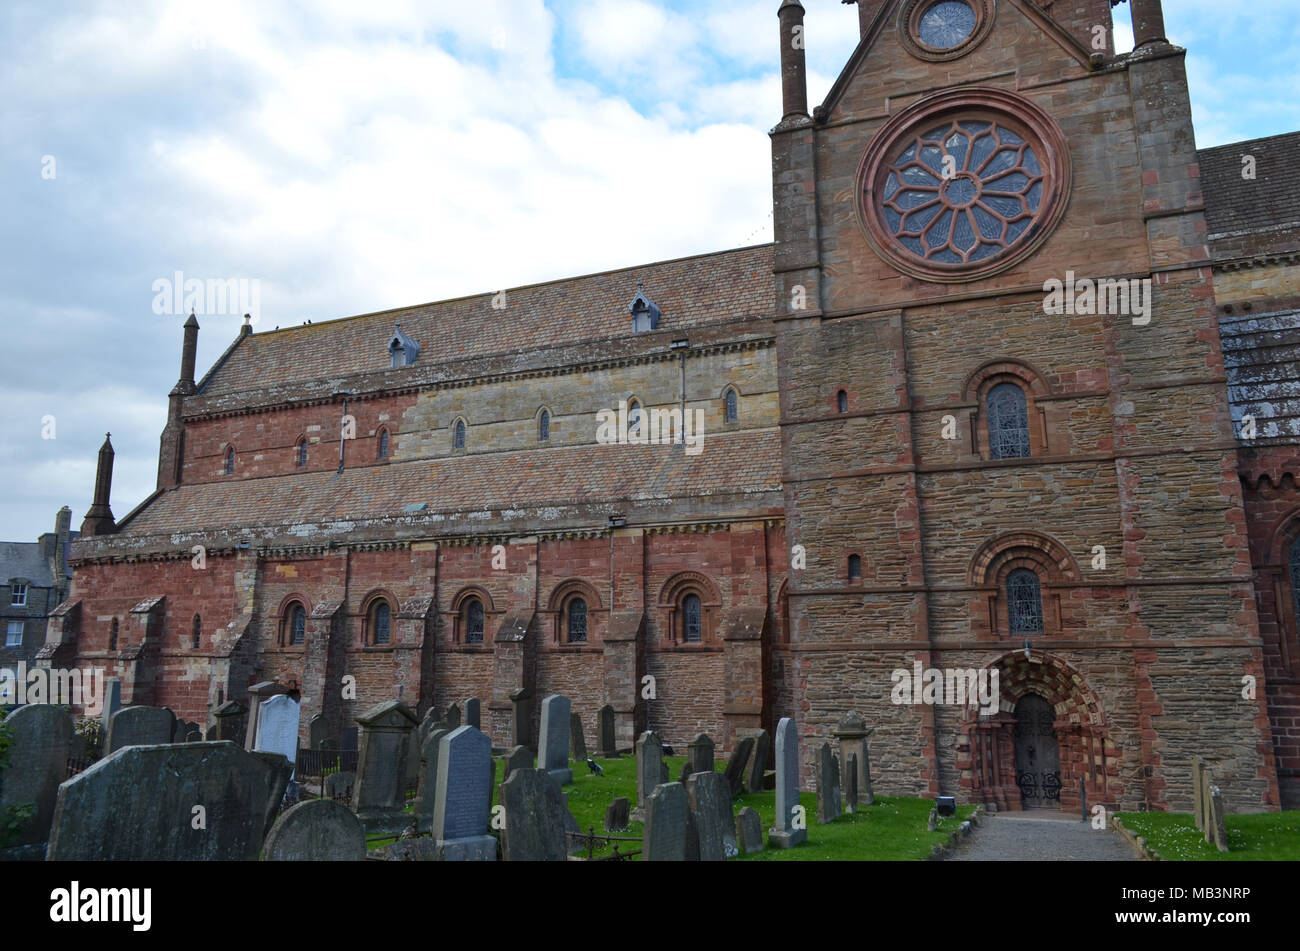 Ancient Saint Magnus cathedral in Kirkwall, Orkney archipelago, Scotland - Stock Image